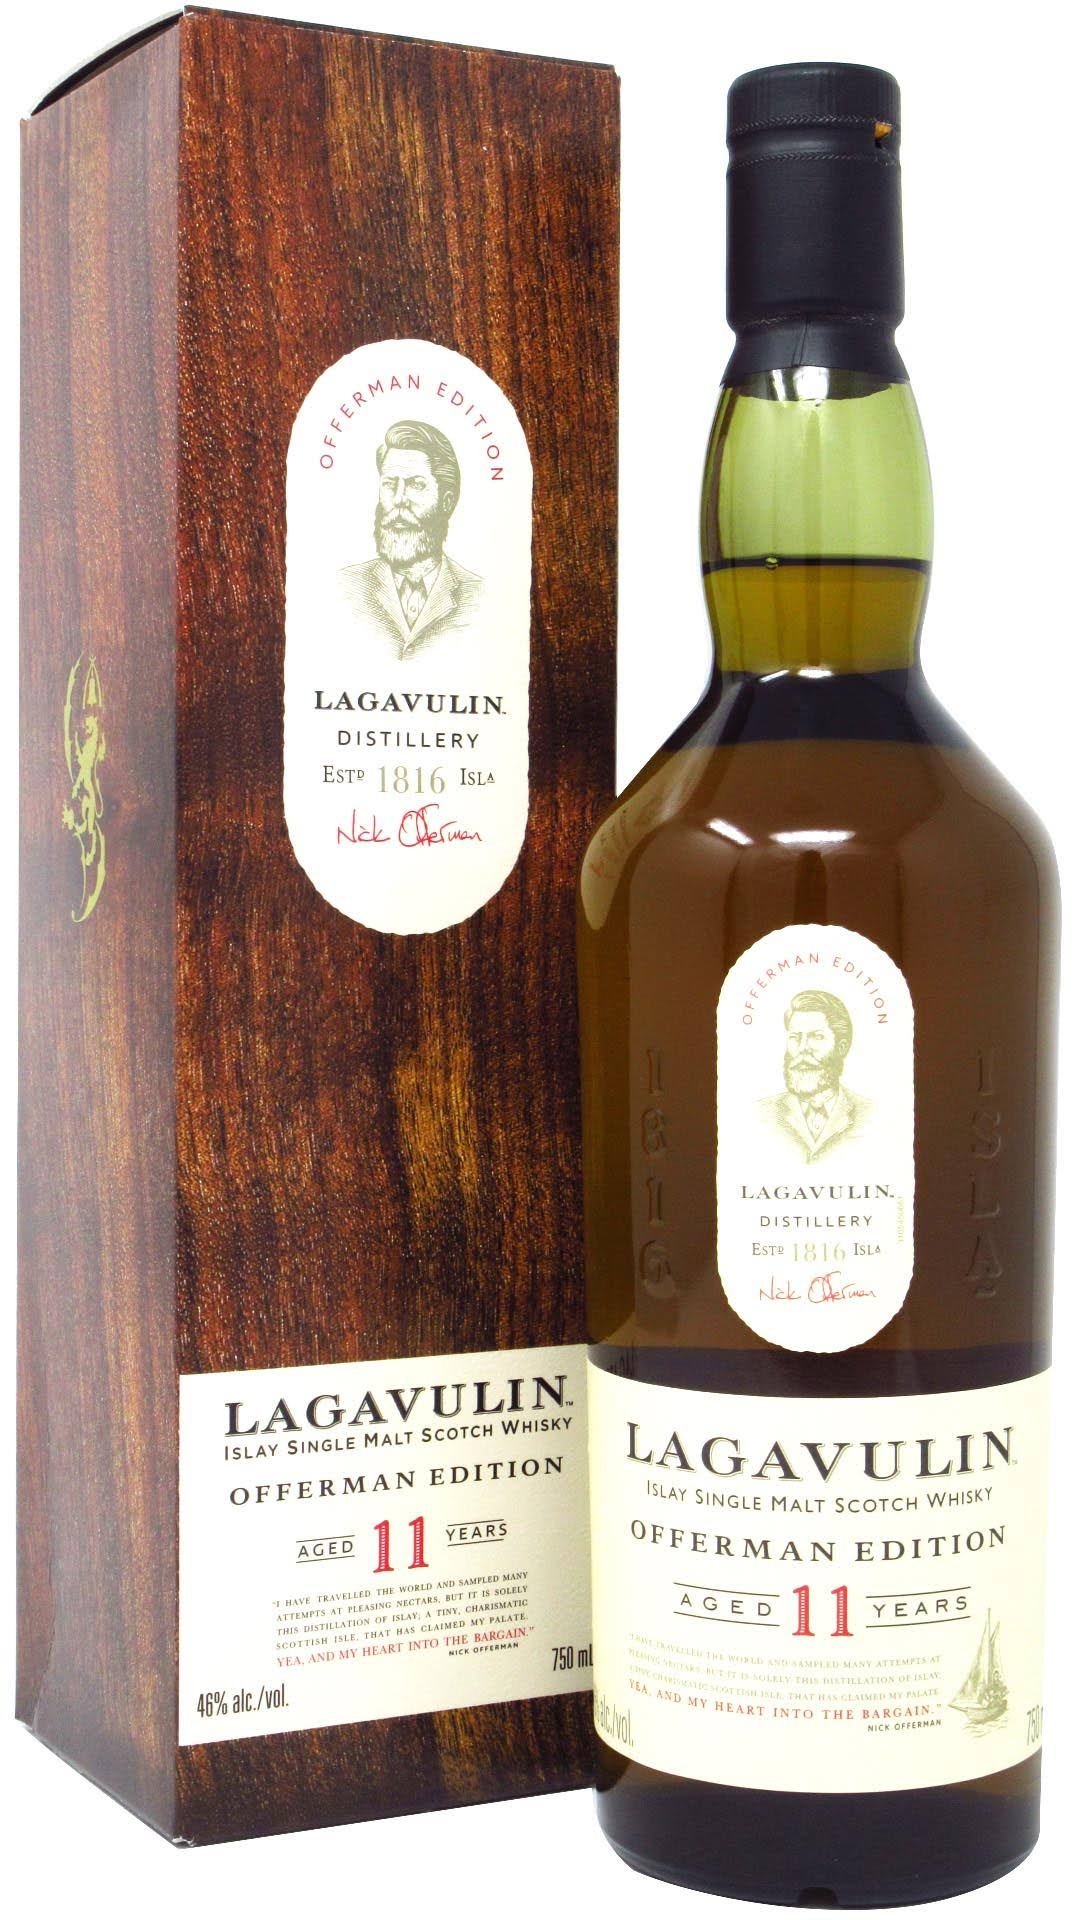 Lagavulin Offerman Edition 11 Year Single Malt Scotch 750 ml